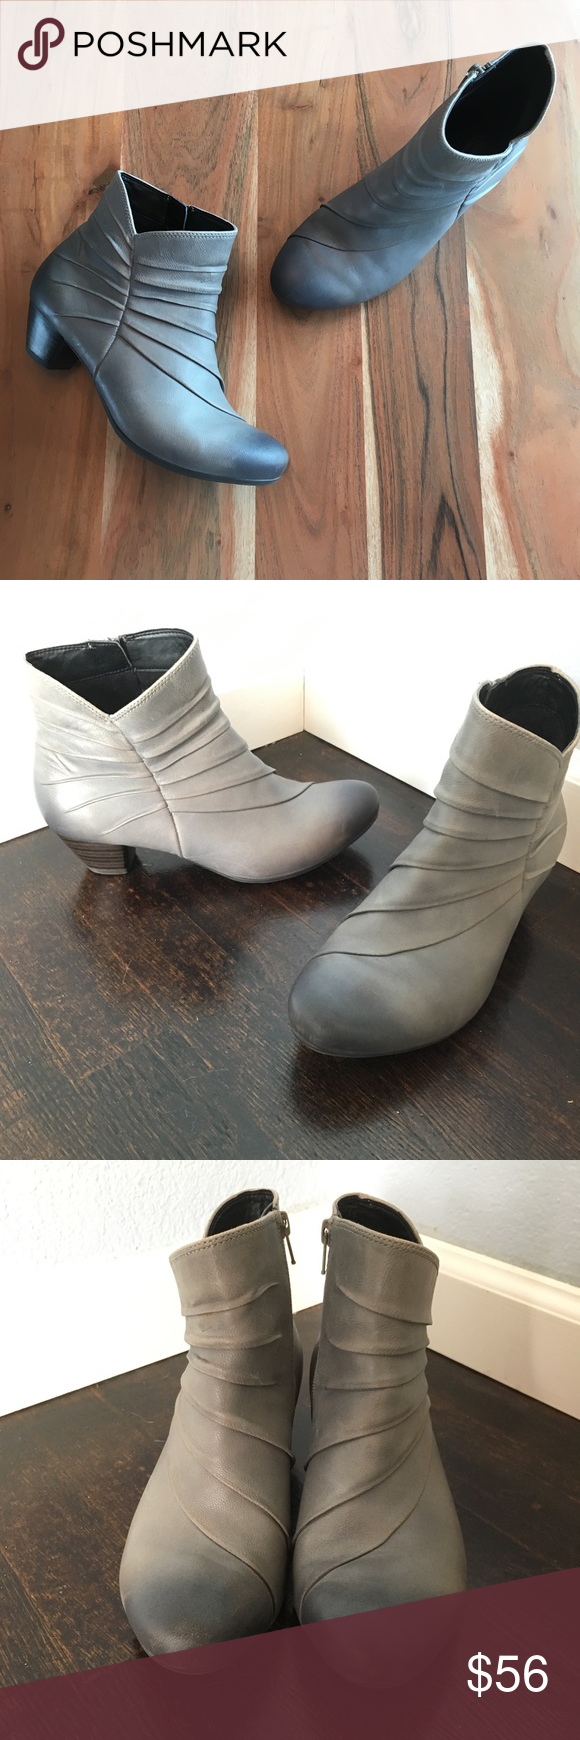 3919b105 Josef Seibel Ruched Leather Ankle Boots Grey leather. Women's size 38 (US  7-7.5). Heels show some wear. Overall great condition. Josef Seibel Shoes  Ankle ...